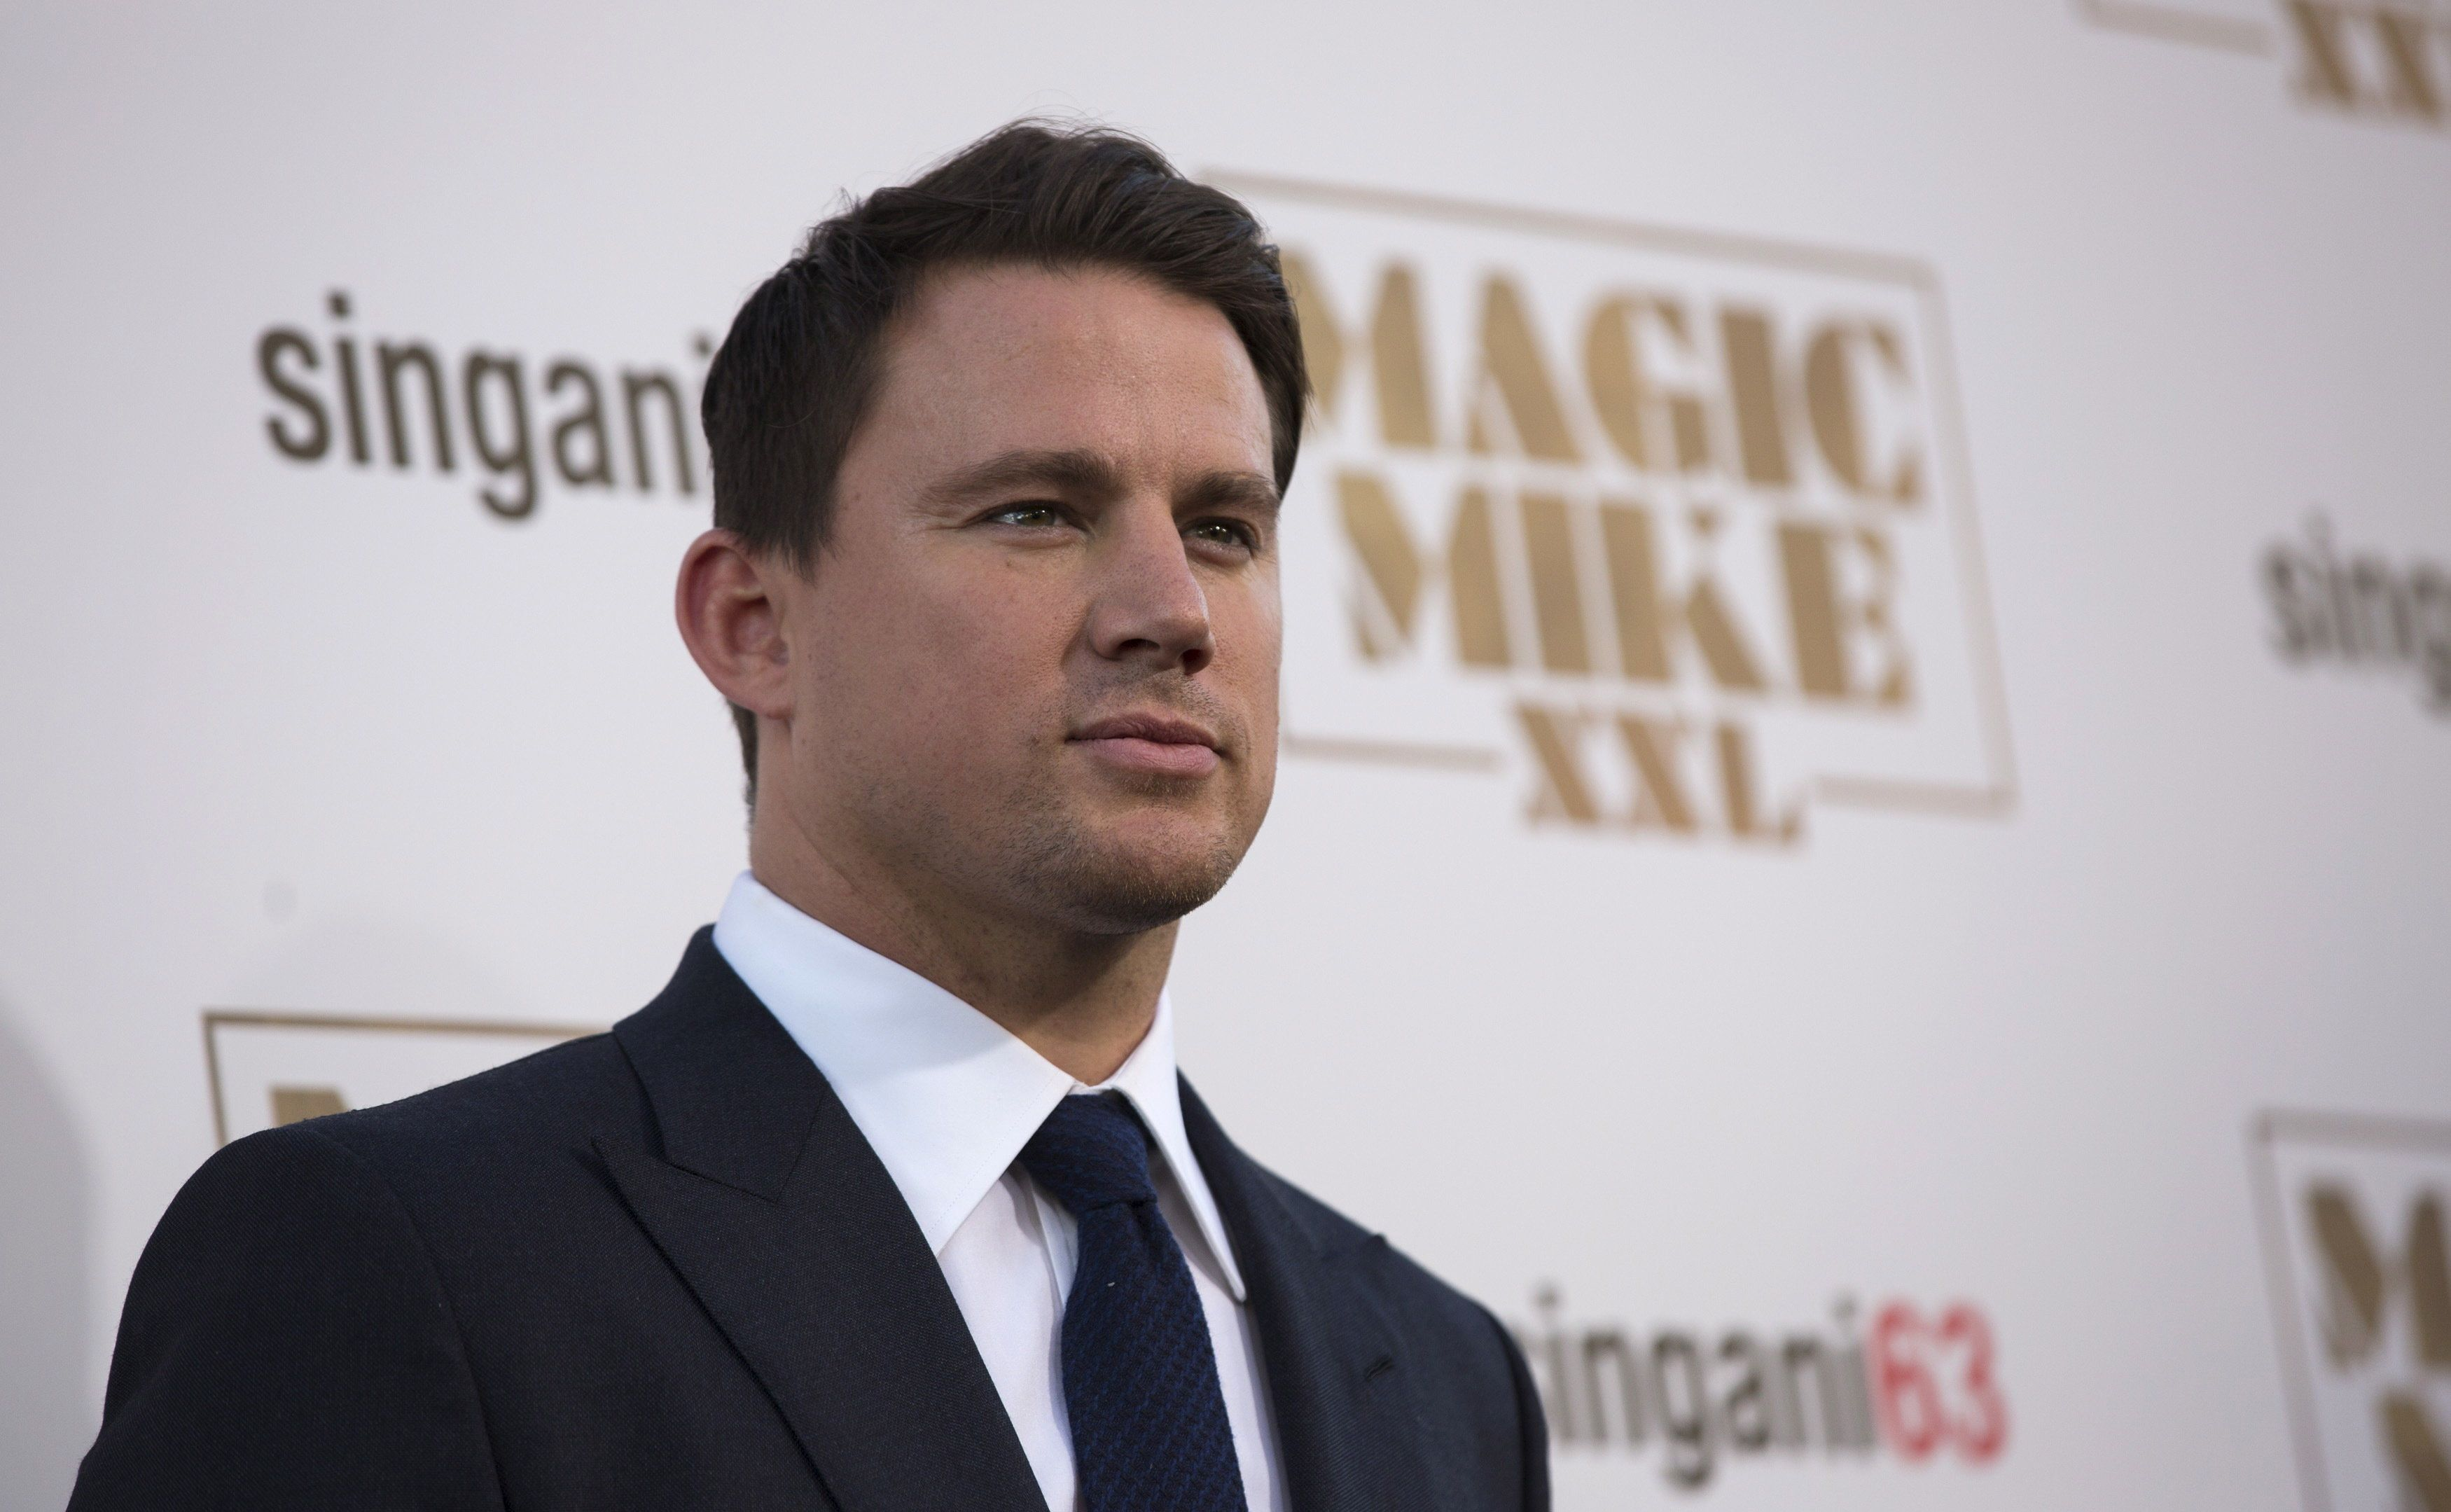 Channing Tatum Cuts Ties With The Weinstein